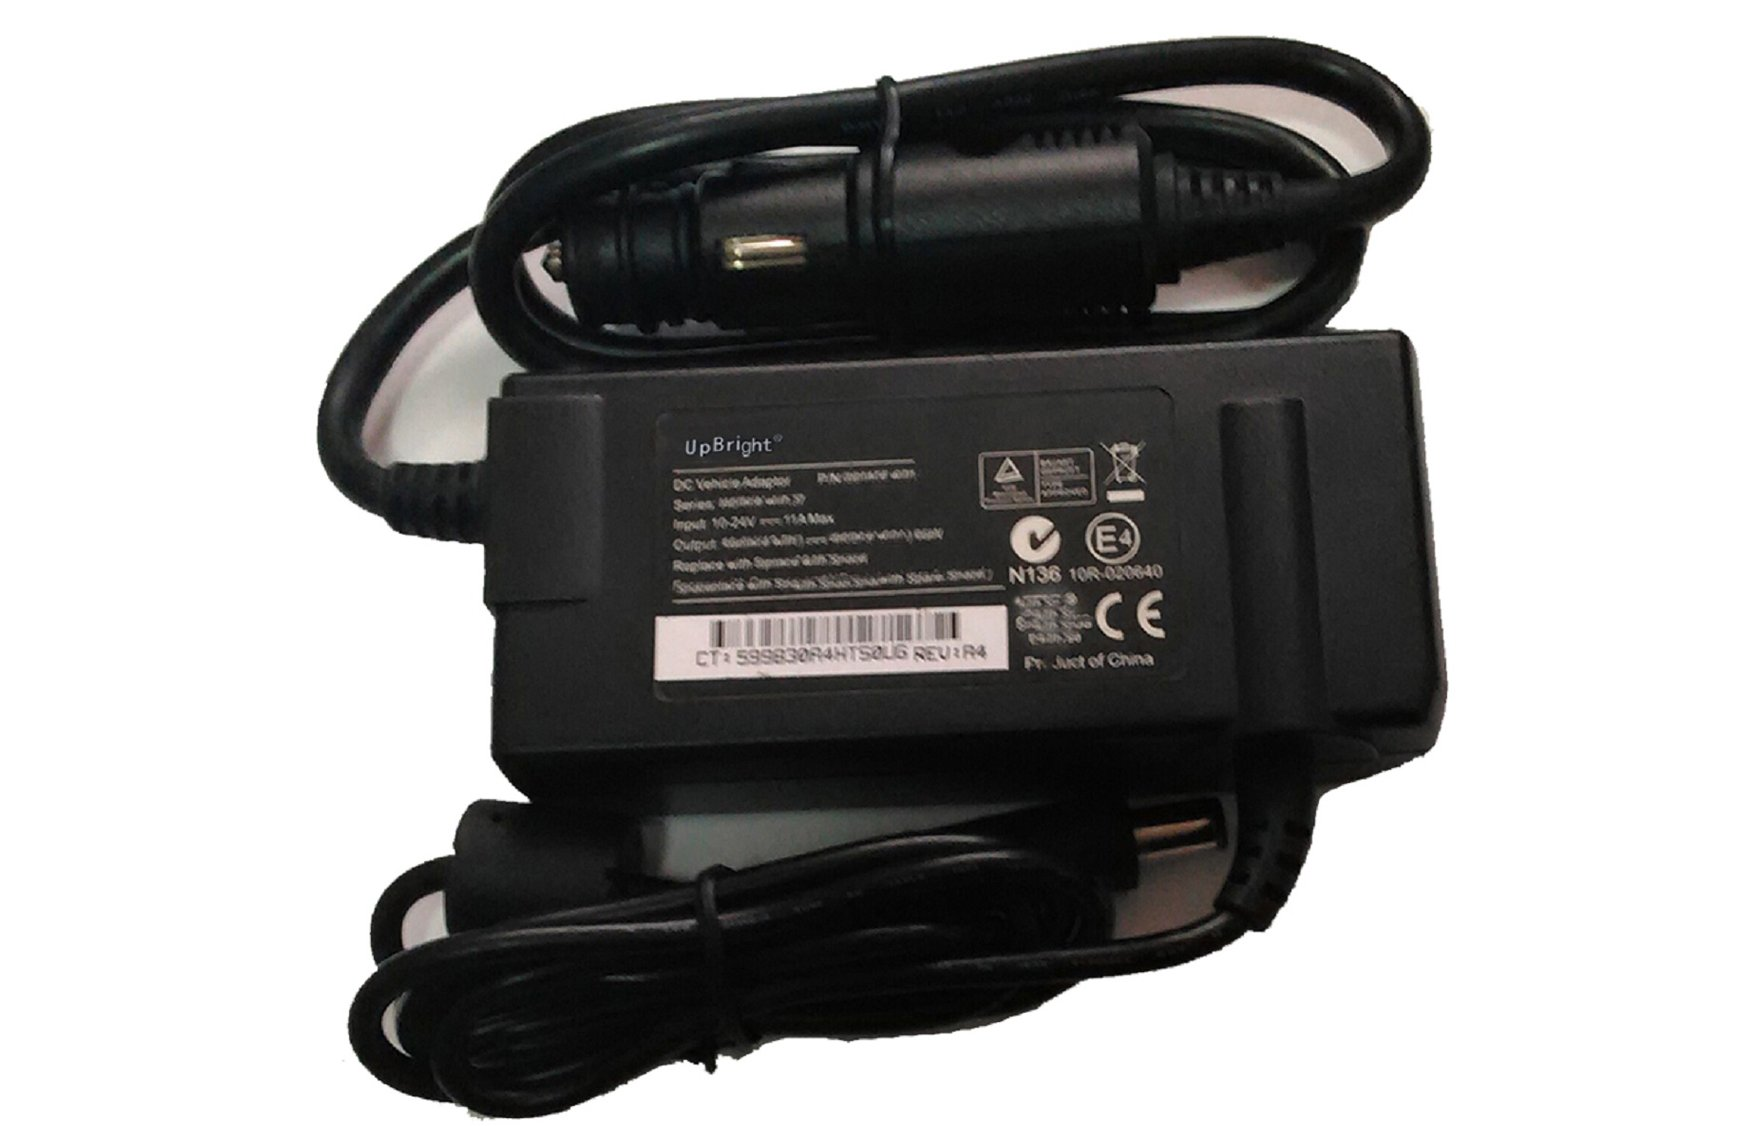 UpBright NEW Car DC Adapter For Getac V110 F110 11.6'' Rugged Tablet PC T800 RX10 RX10H B300 B300X S400 S410 Semi-Rugged Notebook Laptop PC 5400 Power Supply Cord Battery Charger